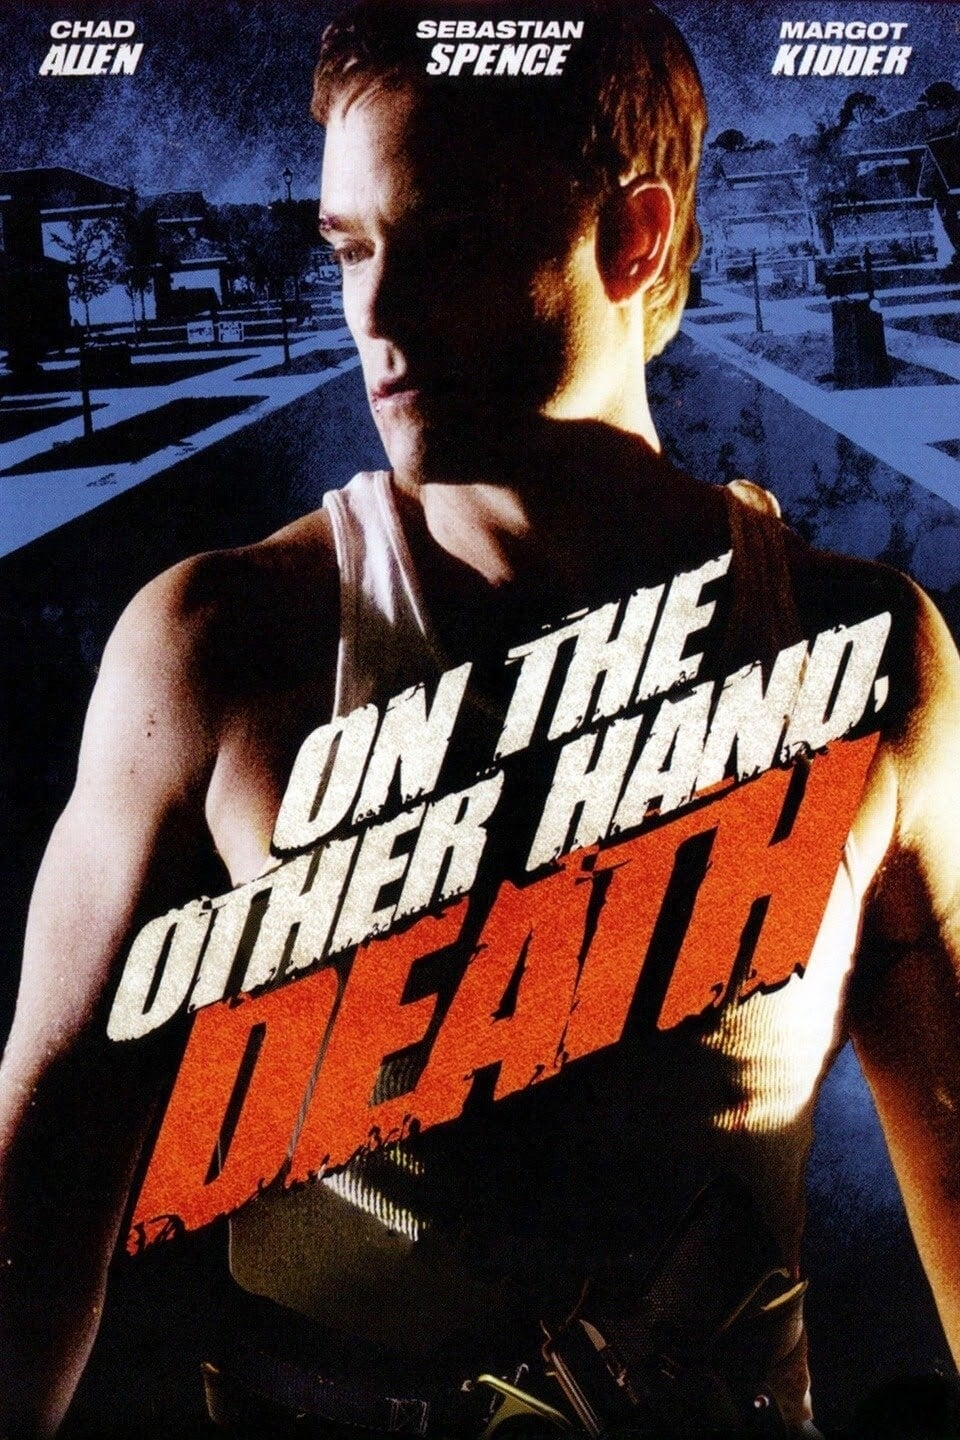 On the Other Hand, Death (2008)